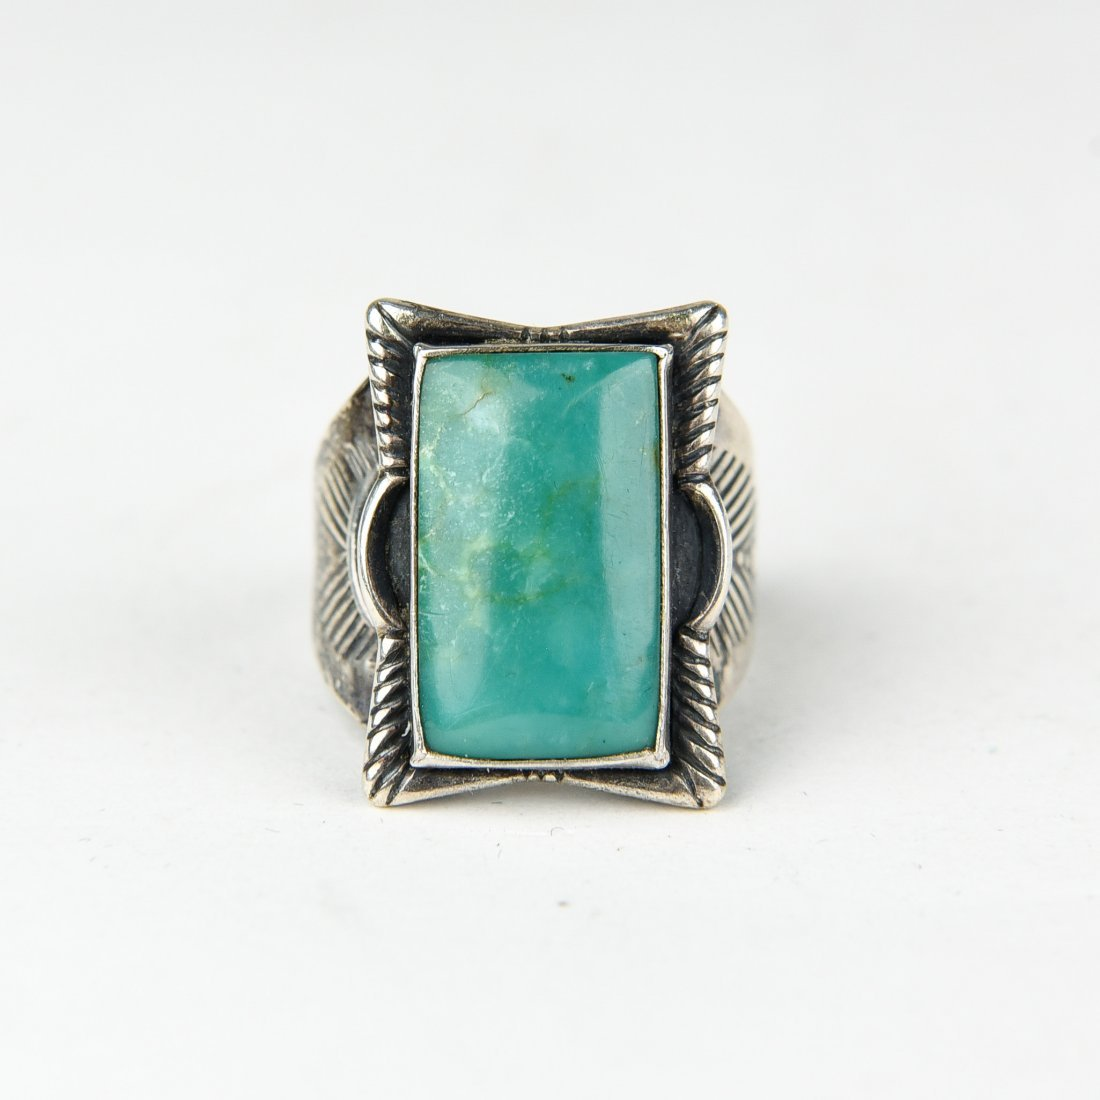 NATIVE AMERICN STERLING AND TURQUOISE RING